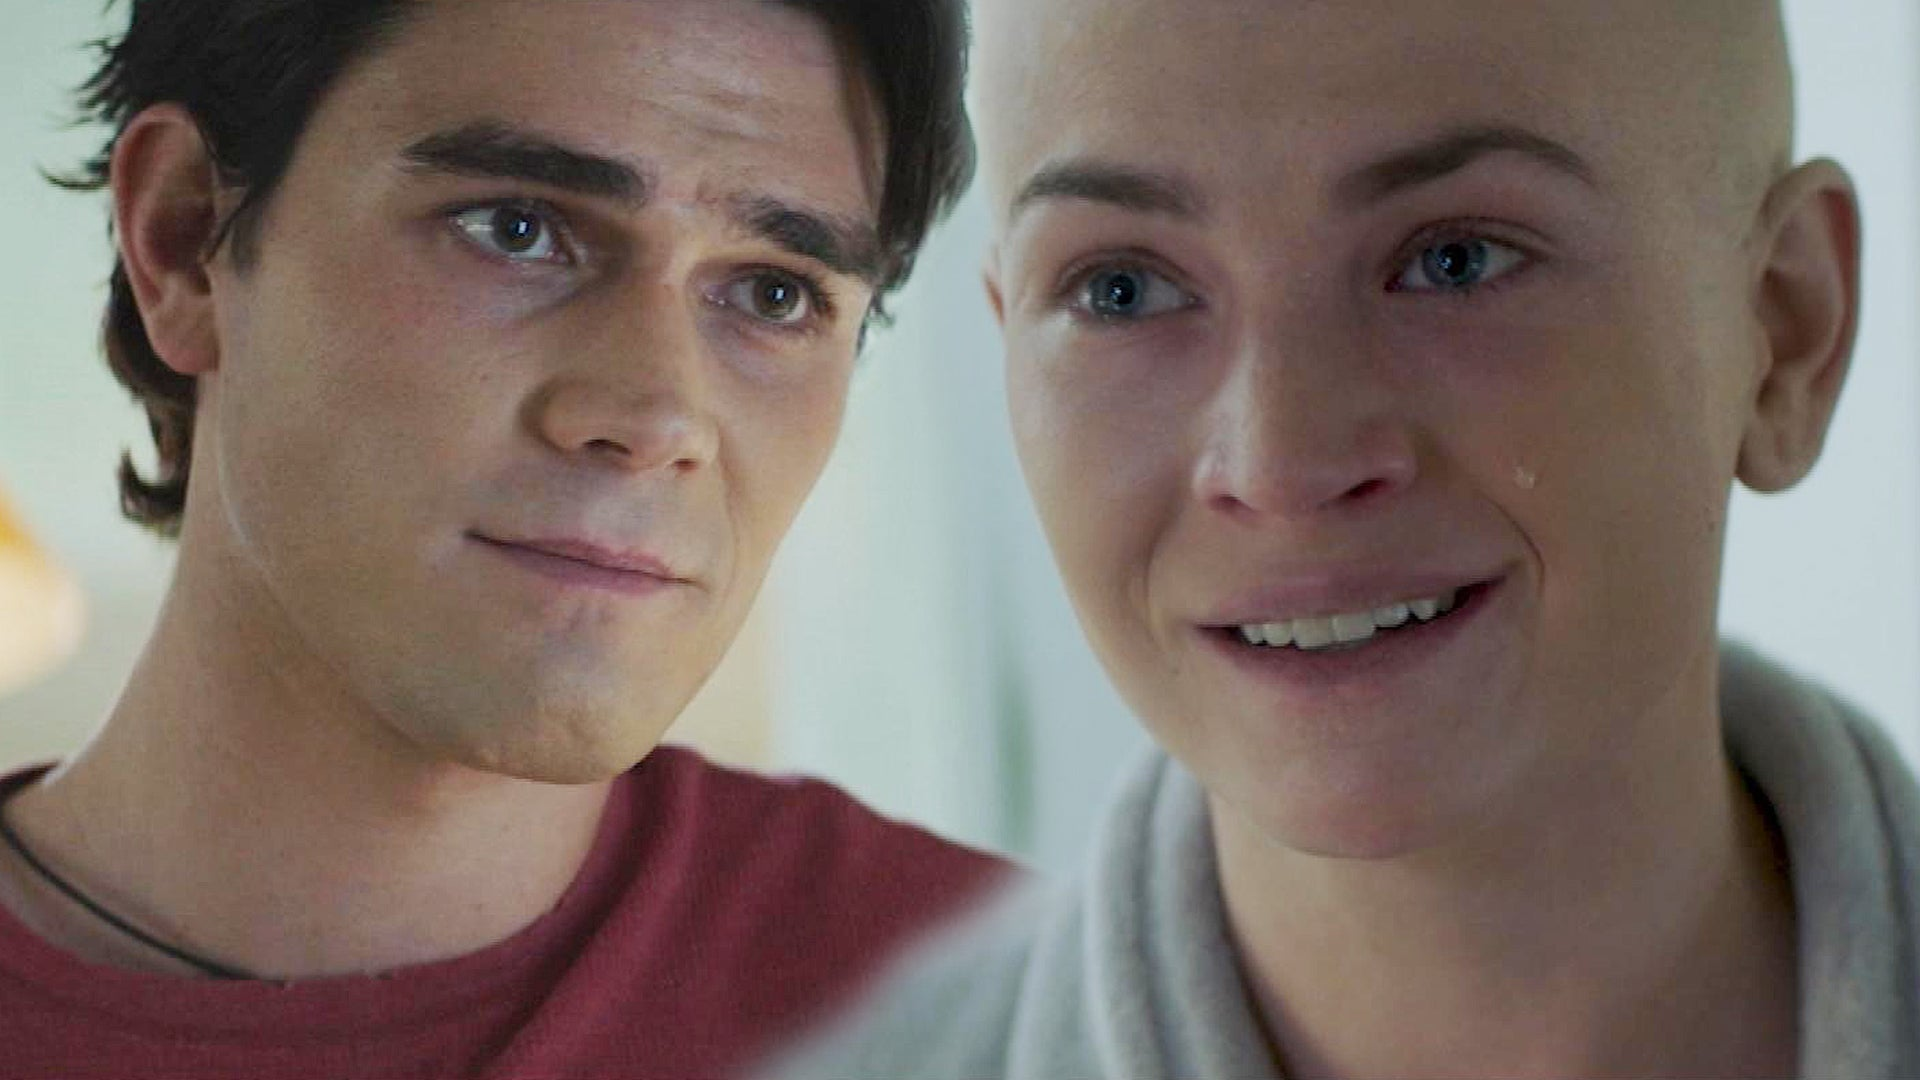 KJ Apa and Britt Robertson Share an  Emotional Moment Amid Cancer Battle (Excl | Entertainment Tonight